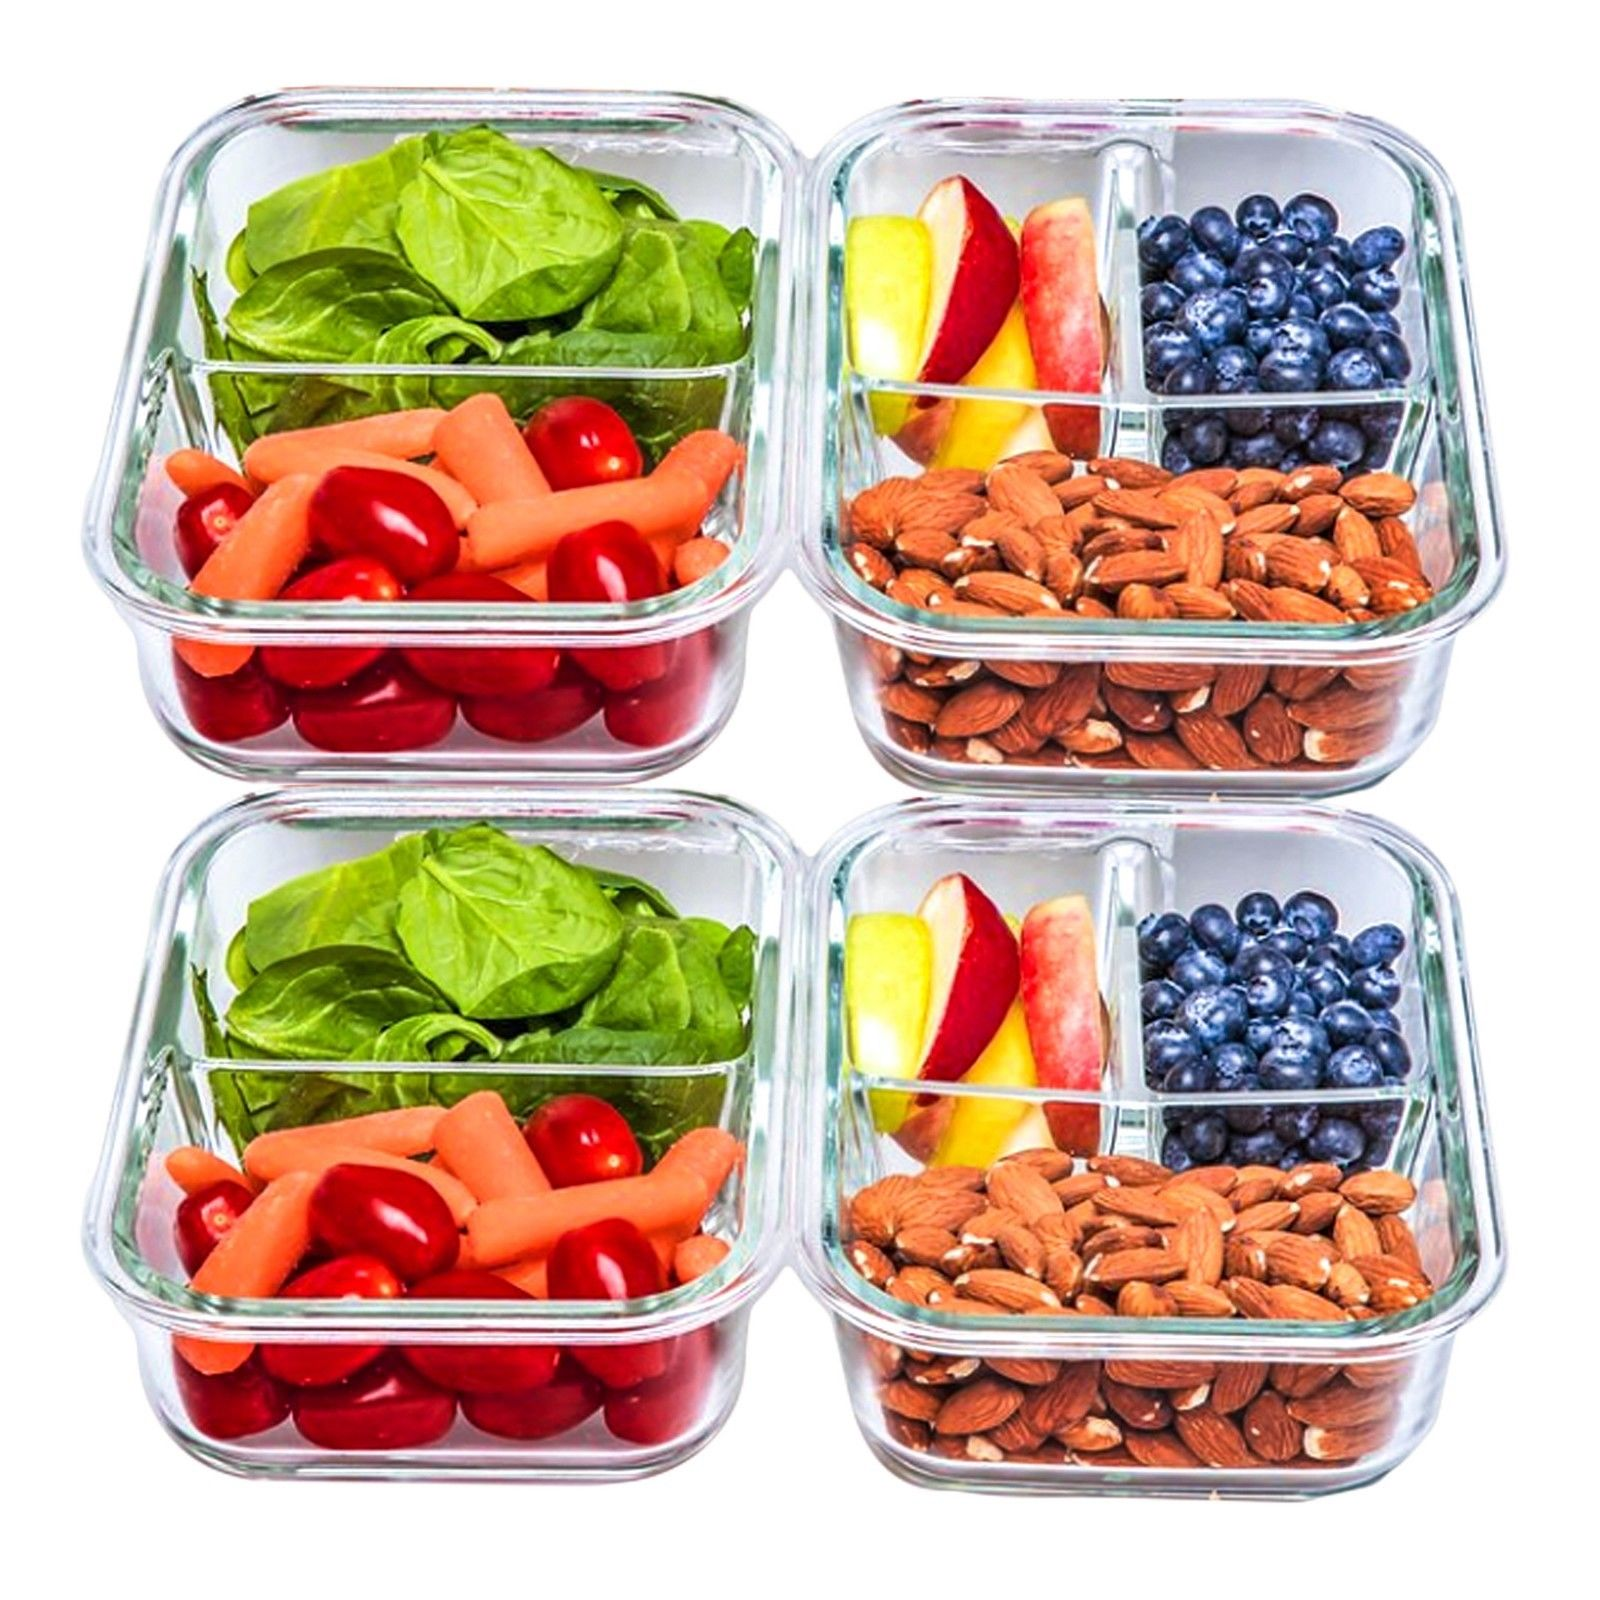 2 & 3 Compartment Glass Meal Prep Food Storage Containers - 4 Pack, 30 OZ 1